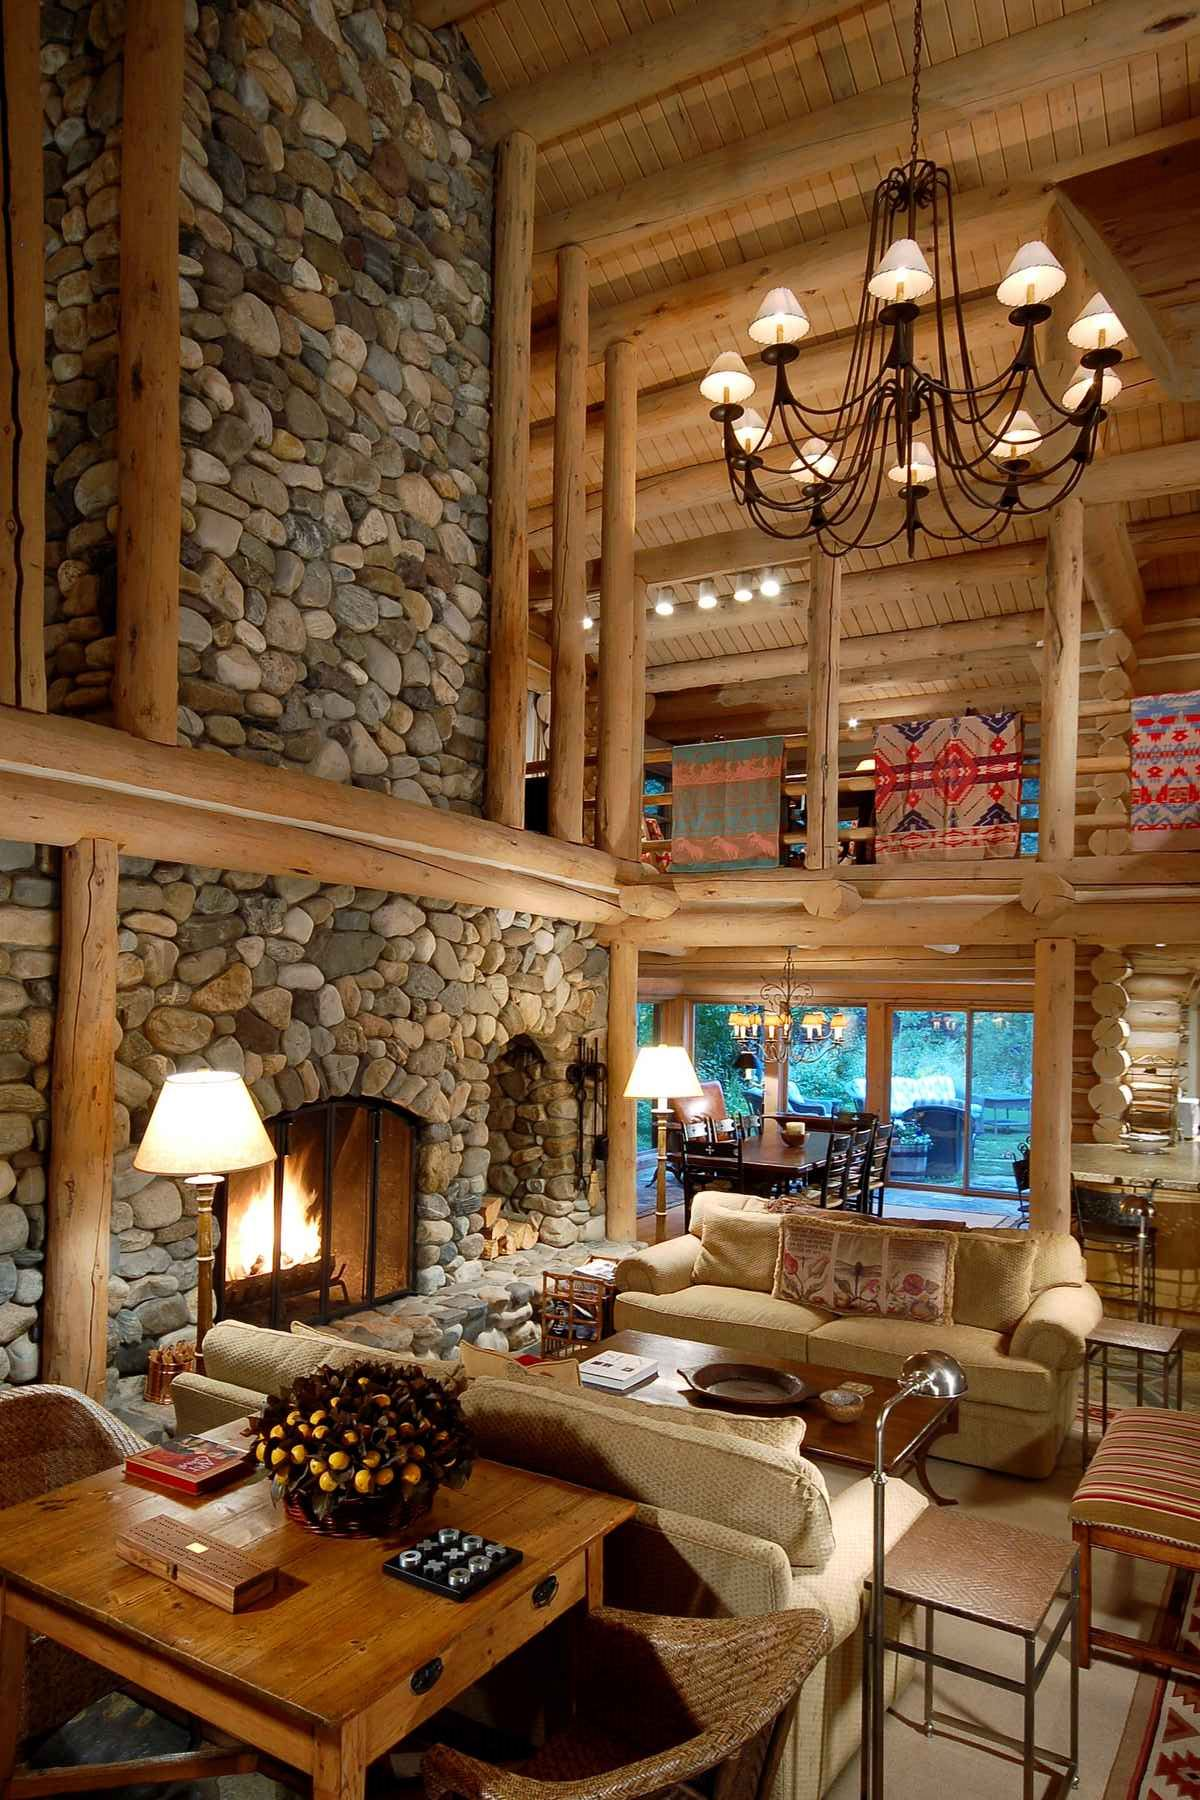 Additional photo for property listing at Sweet Irene 130 Irene St. Ketchum, Idaho 83340 United States